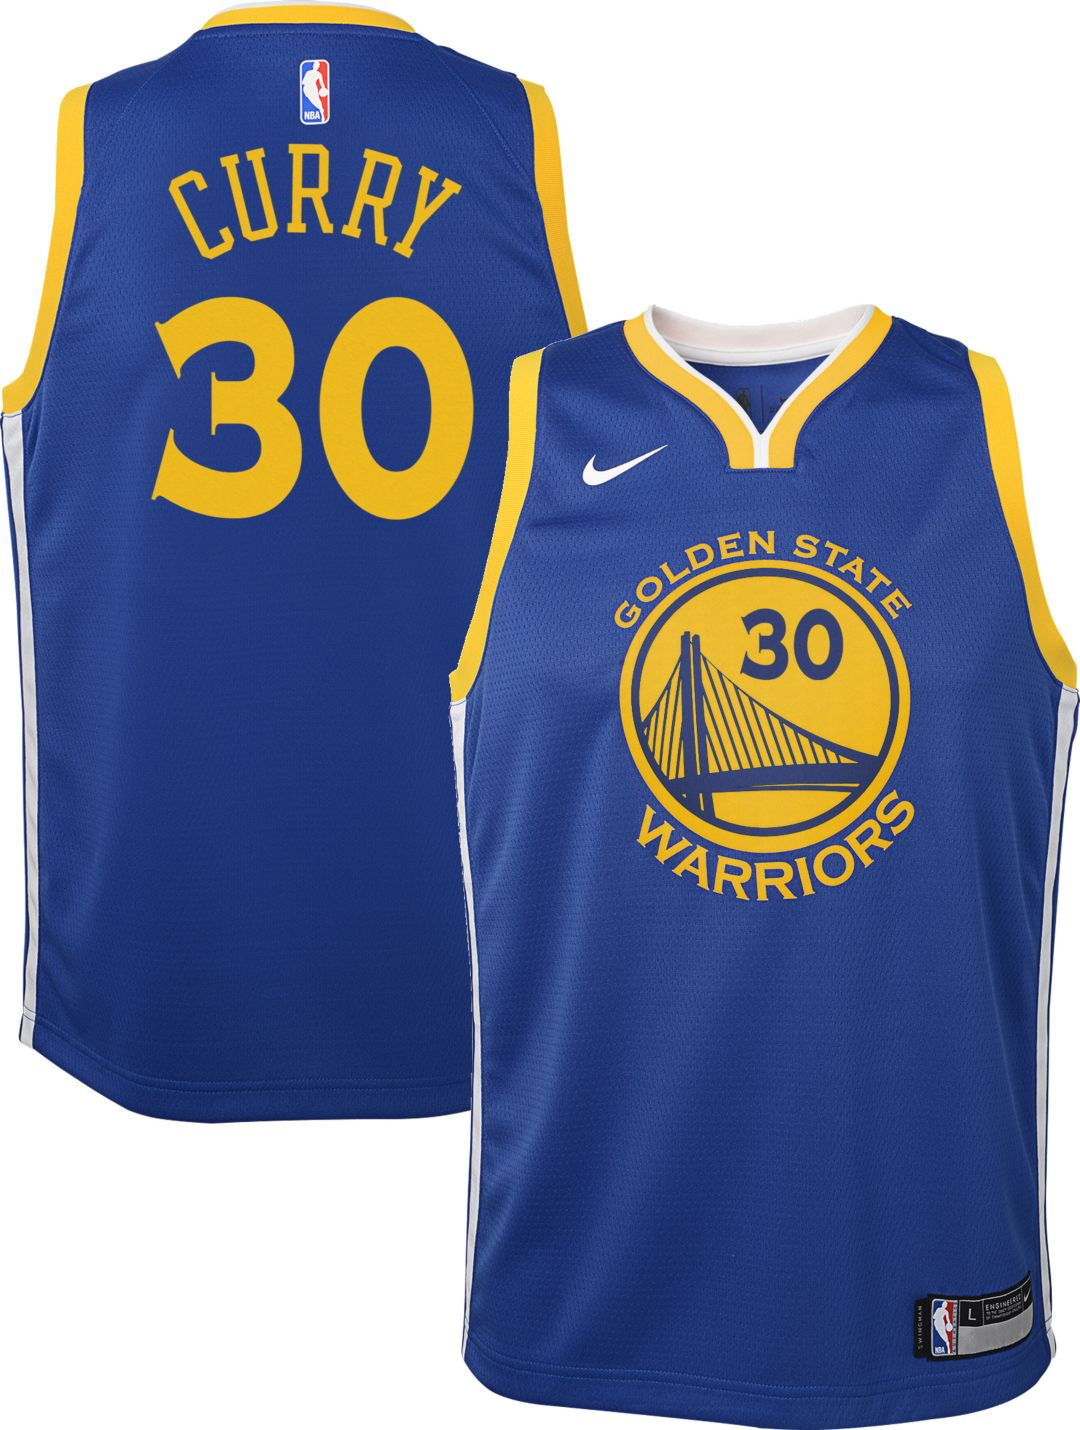 check out 63601 3310b golden state curry shirt